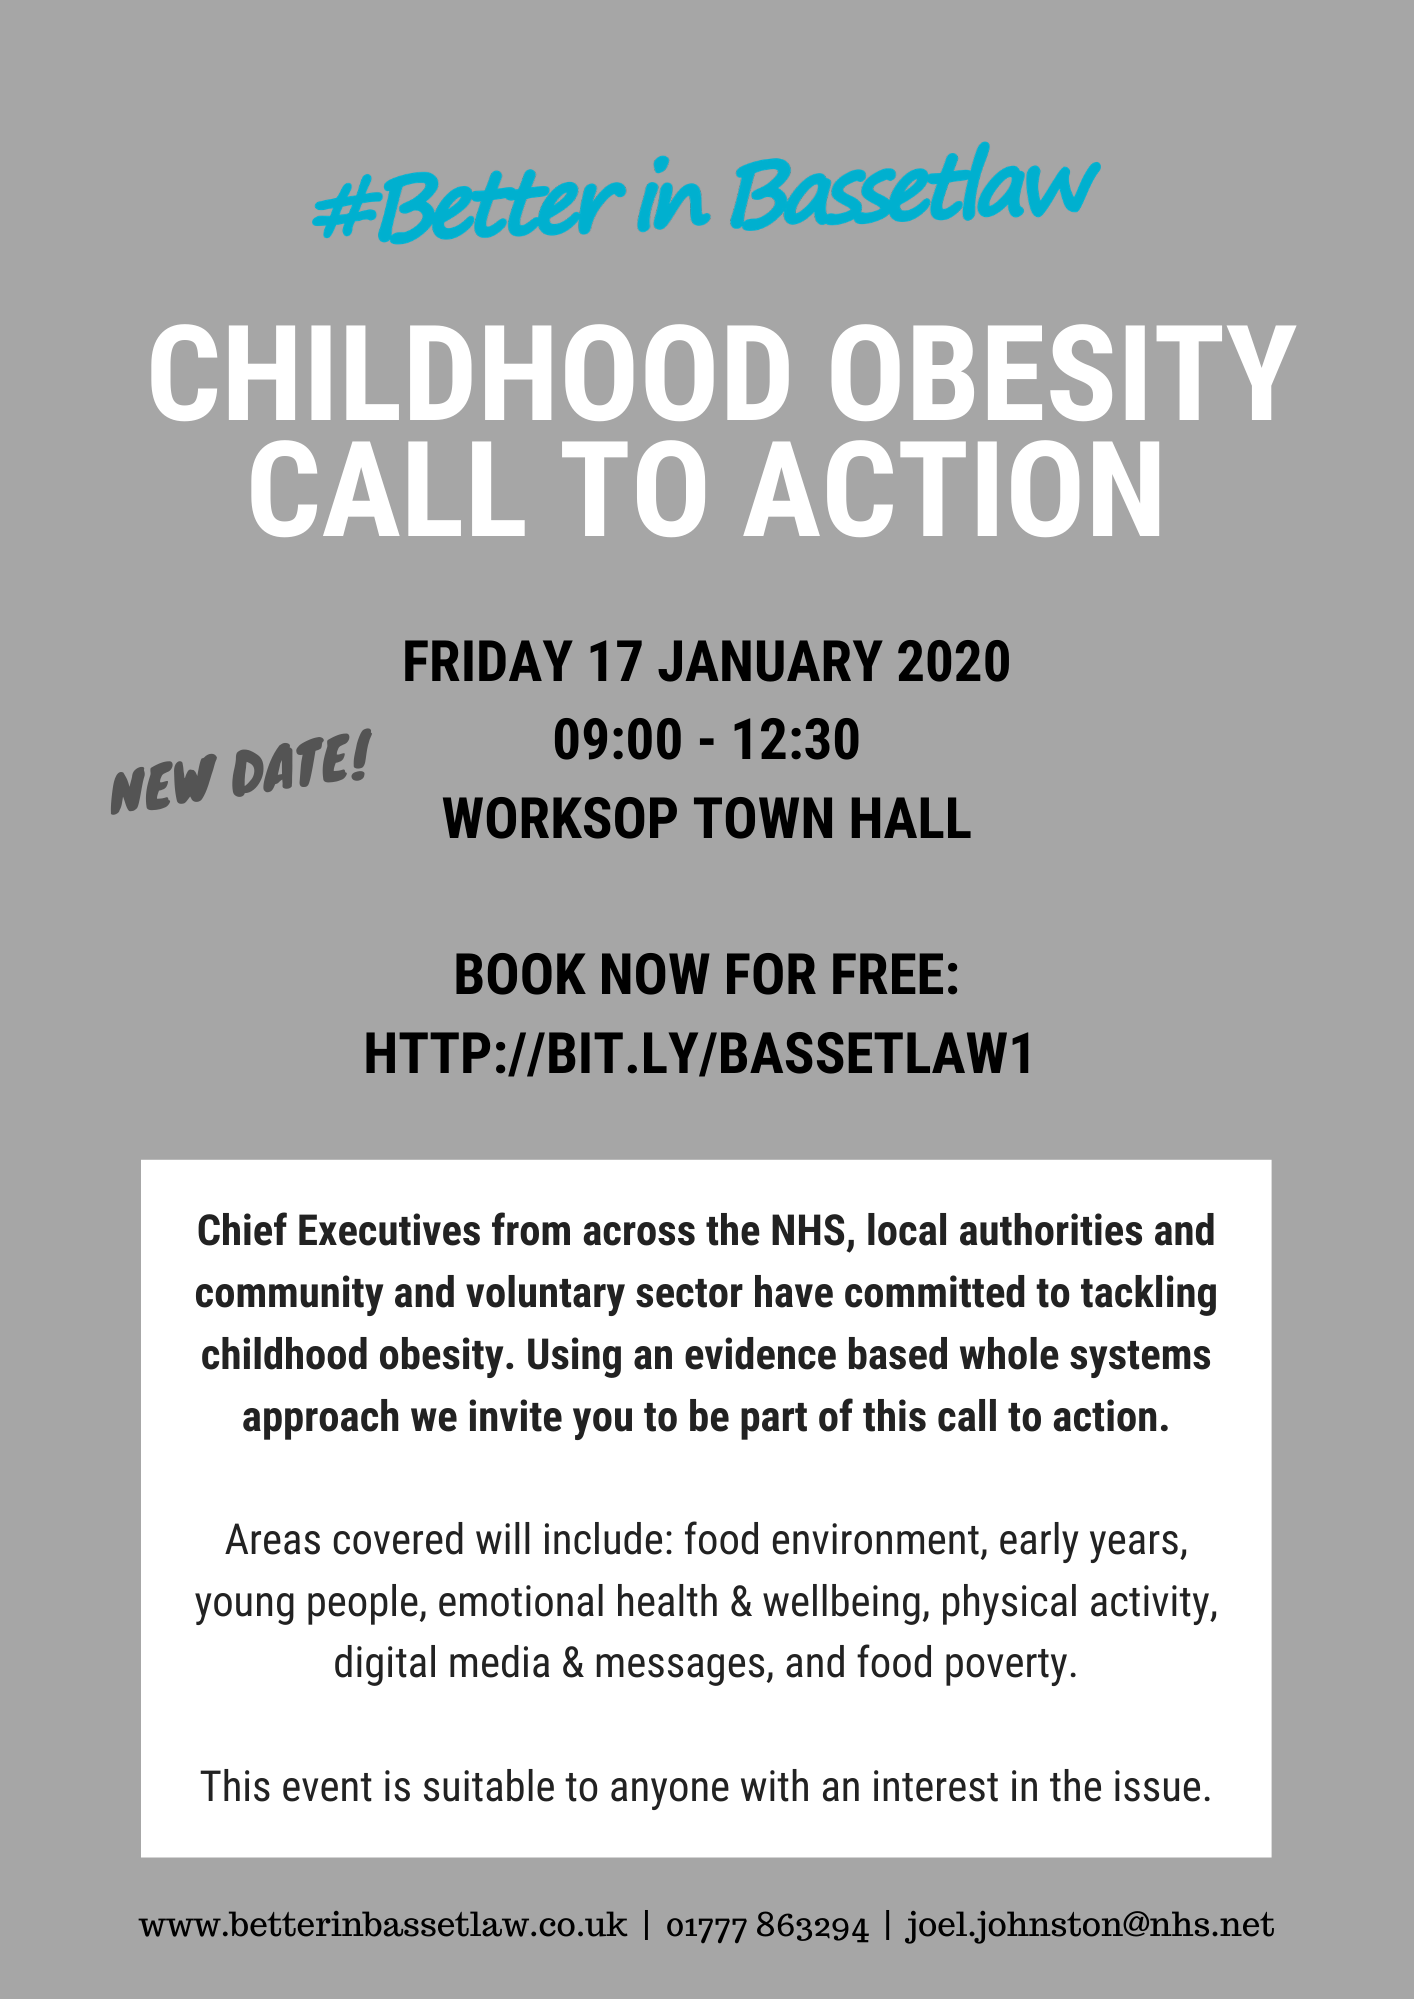 Bassetlaw Childhood Obesity Call to Action 17_01_20